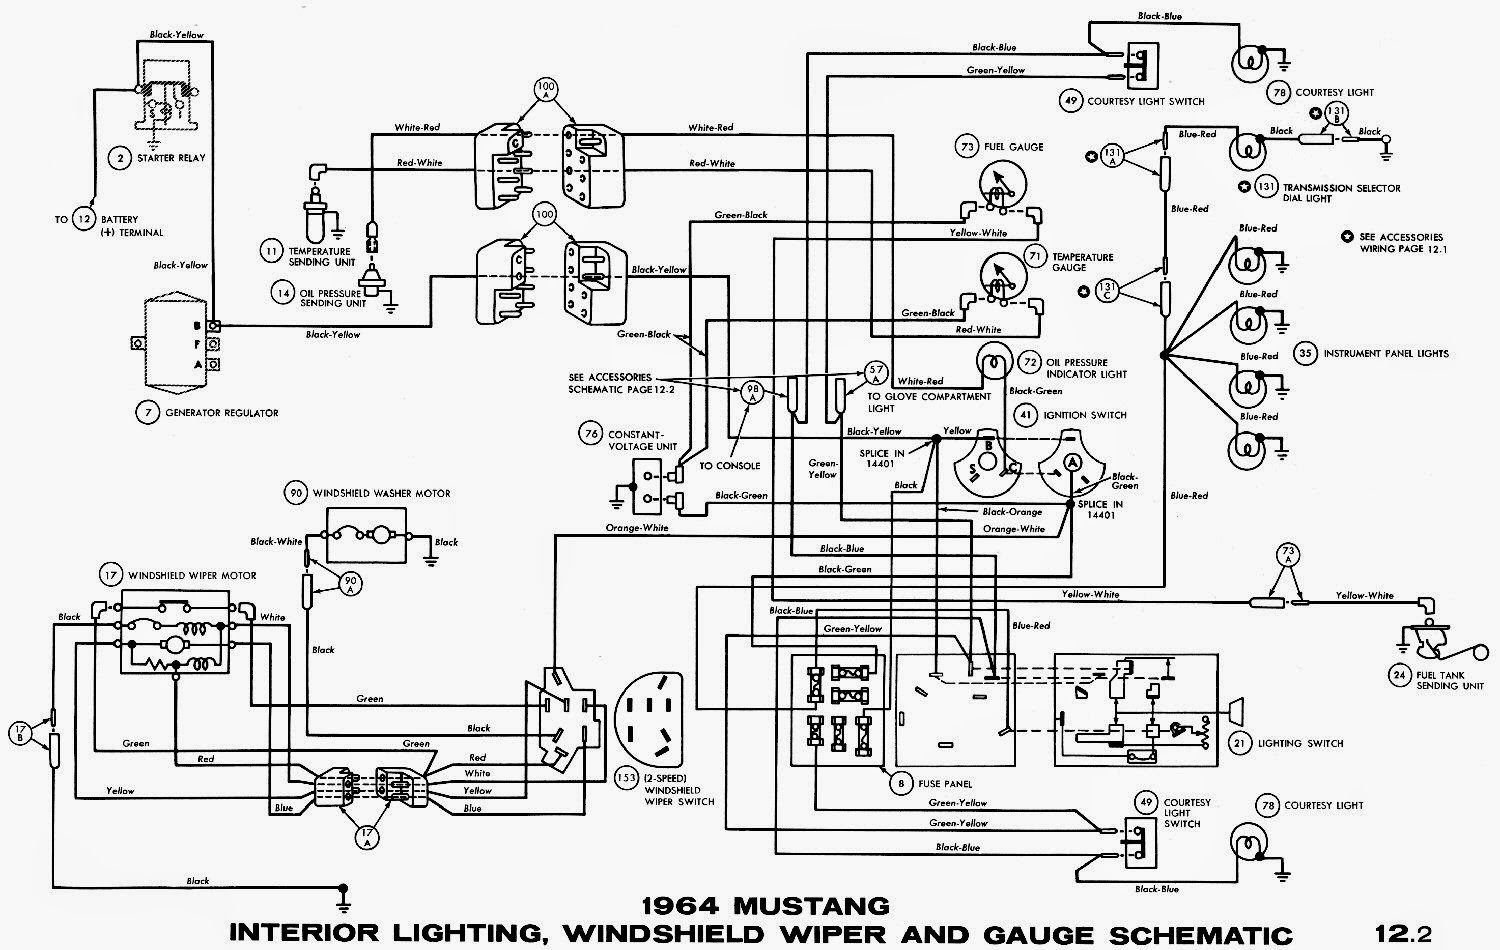 1964 Mustang Wiring Diagrams Schematic on 1967 chevy ignition switch diagram